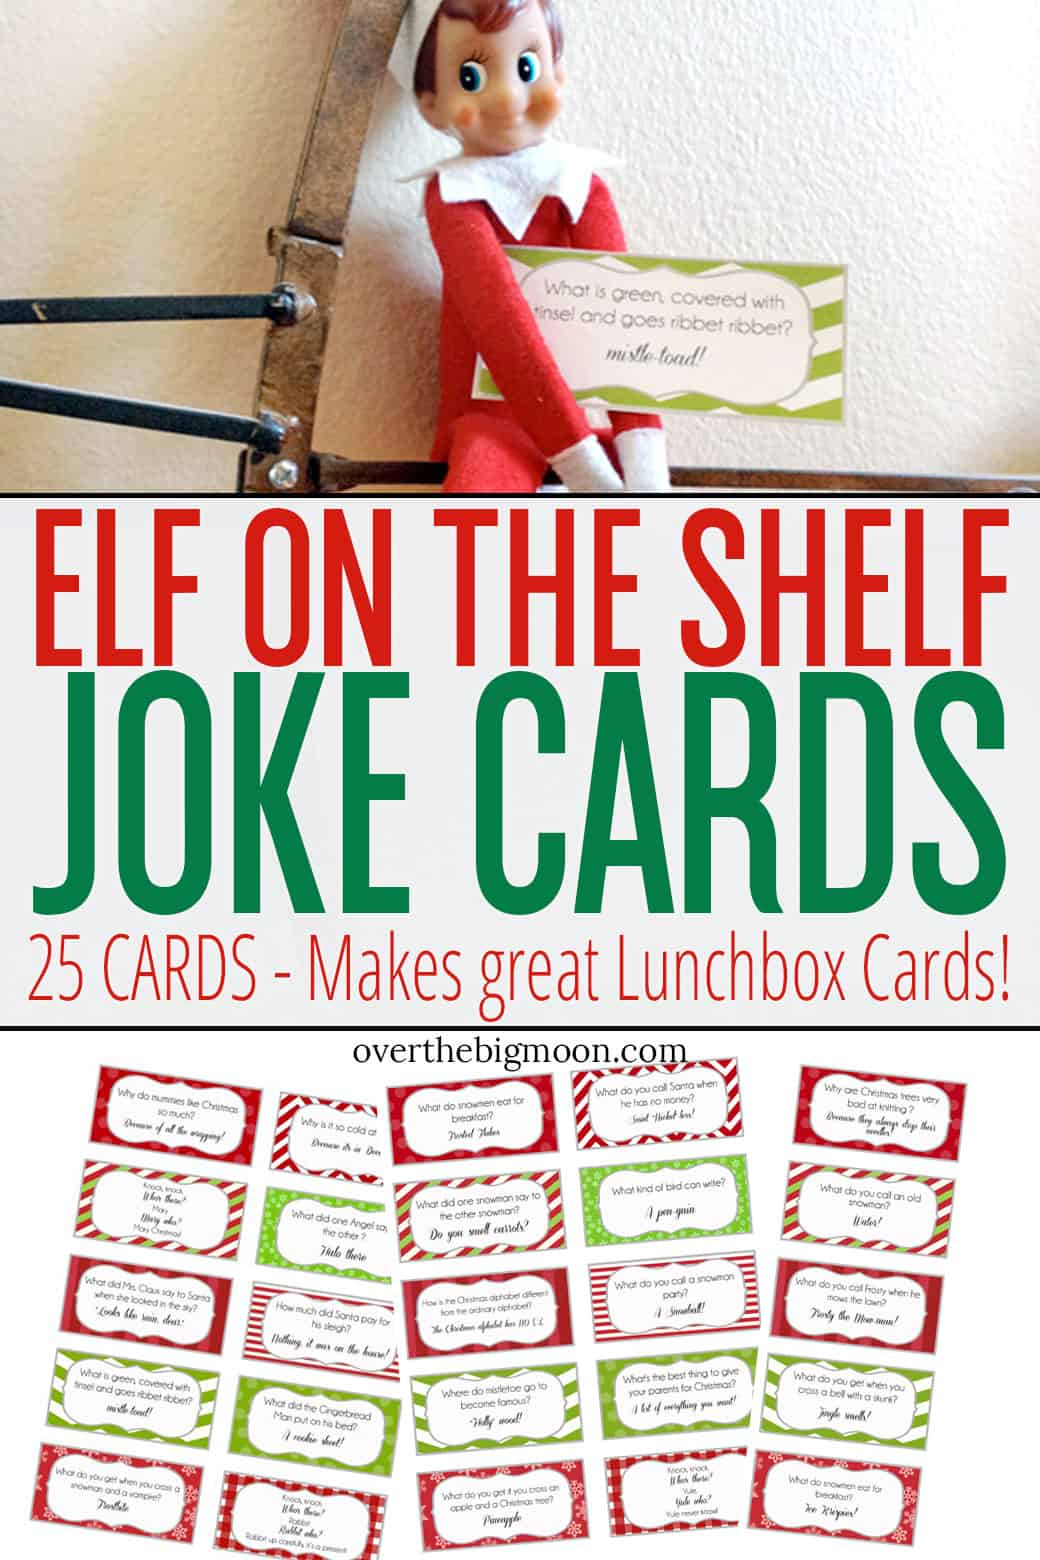 Elf on the Shelf Joke Cards- how fun would it be to have your Elf bring your kiddos a Holiday joke each day? These also make great Holiday Joke Cards for kids lunch boxes! From overthebigmoon.com!